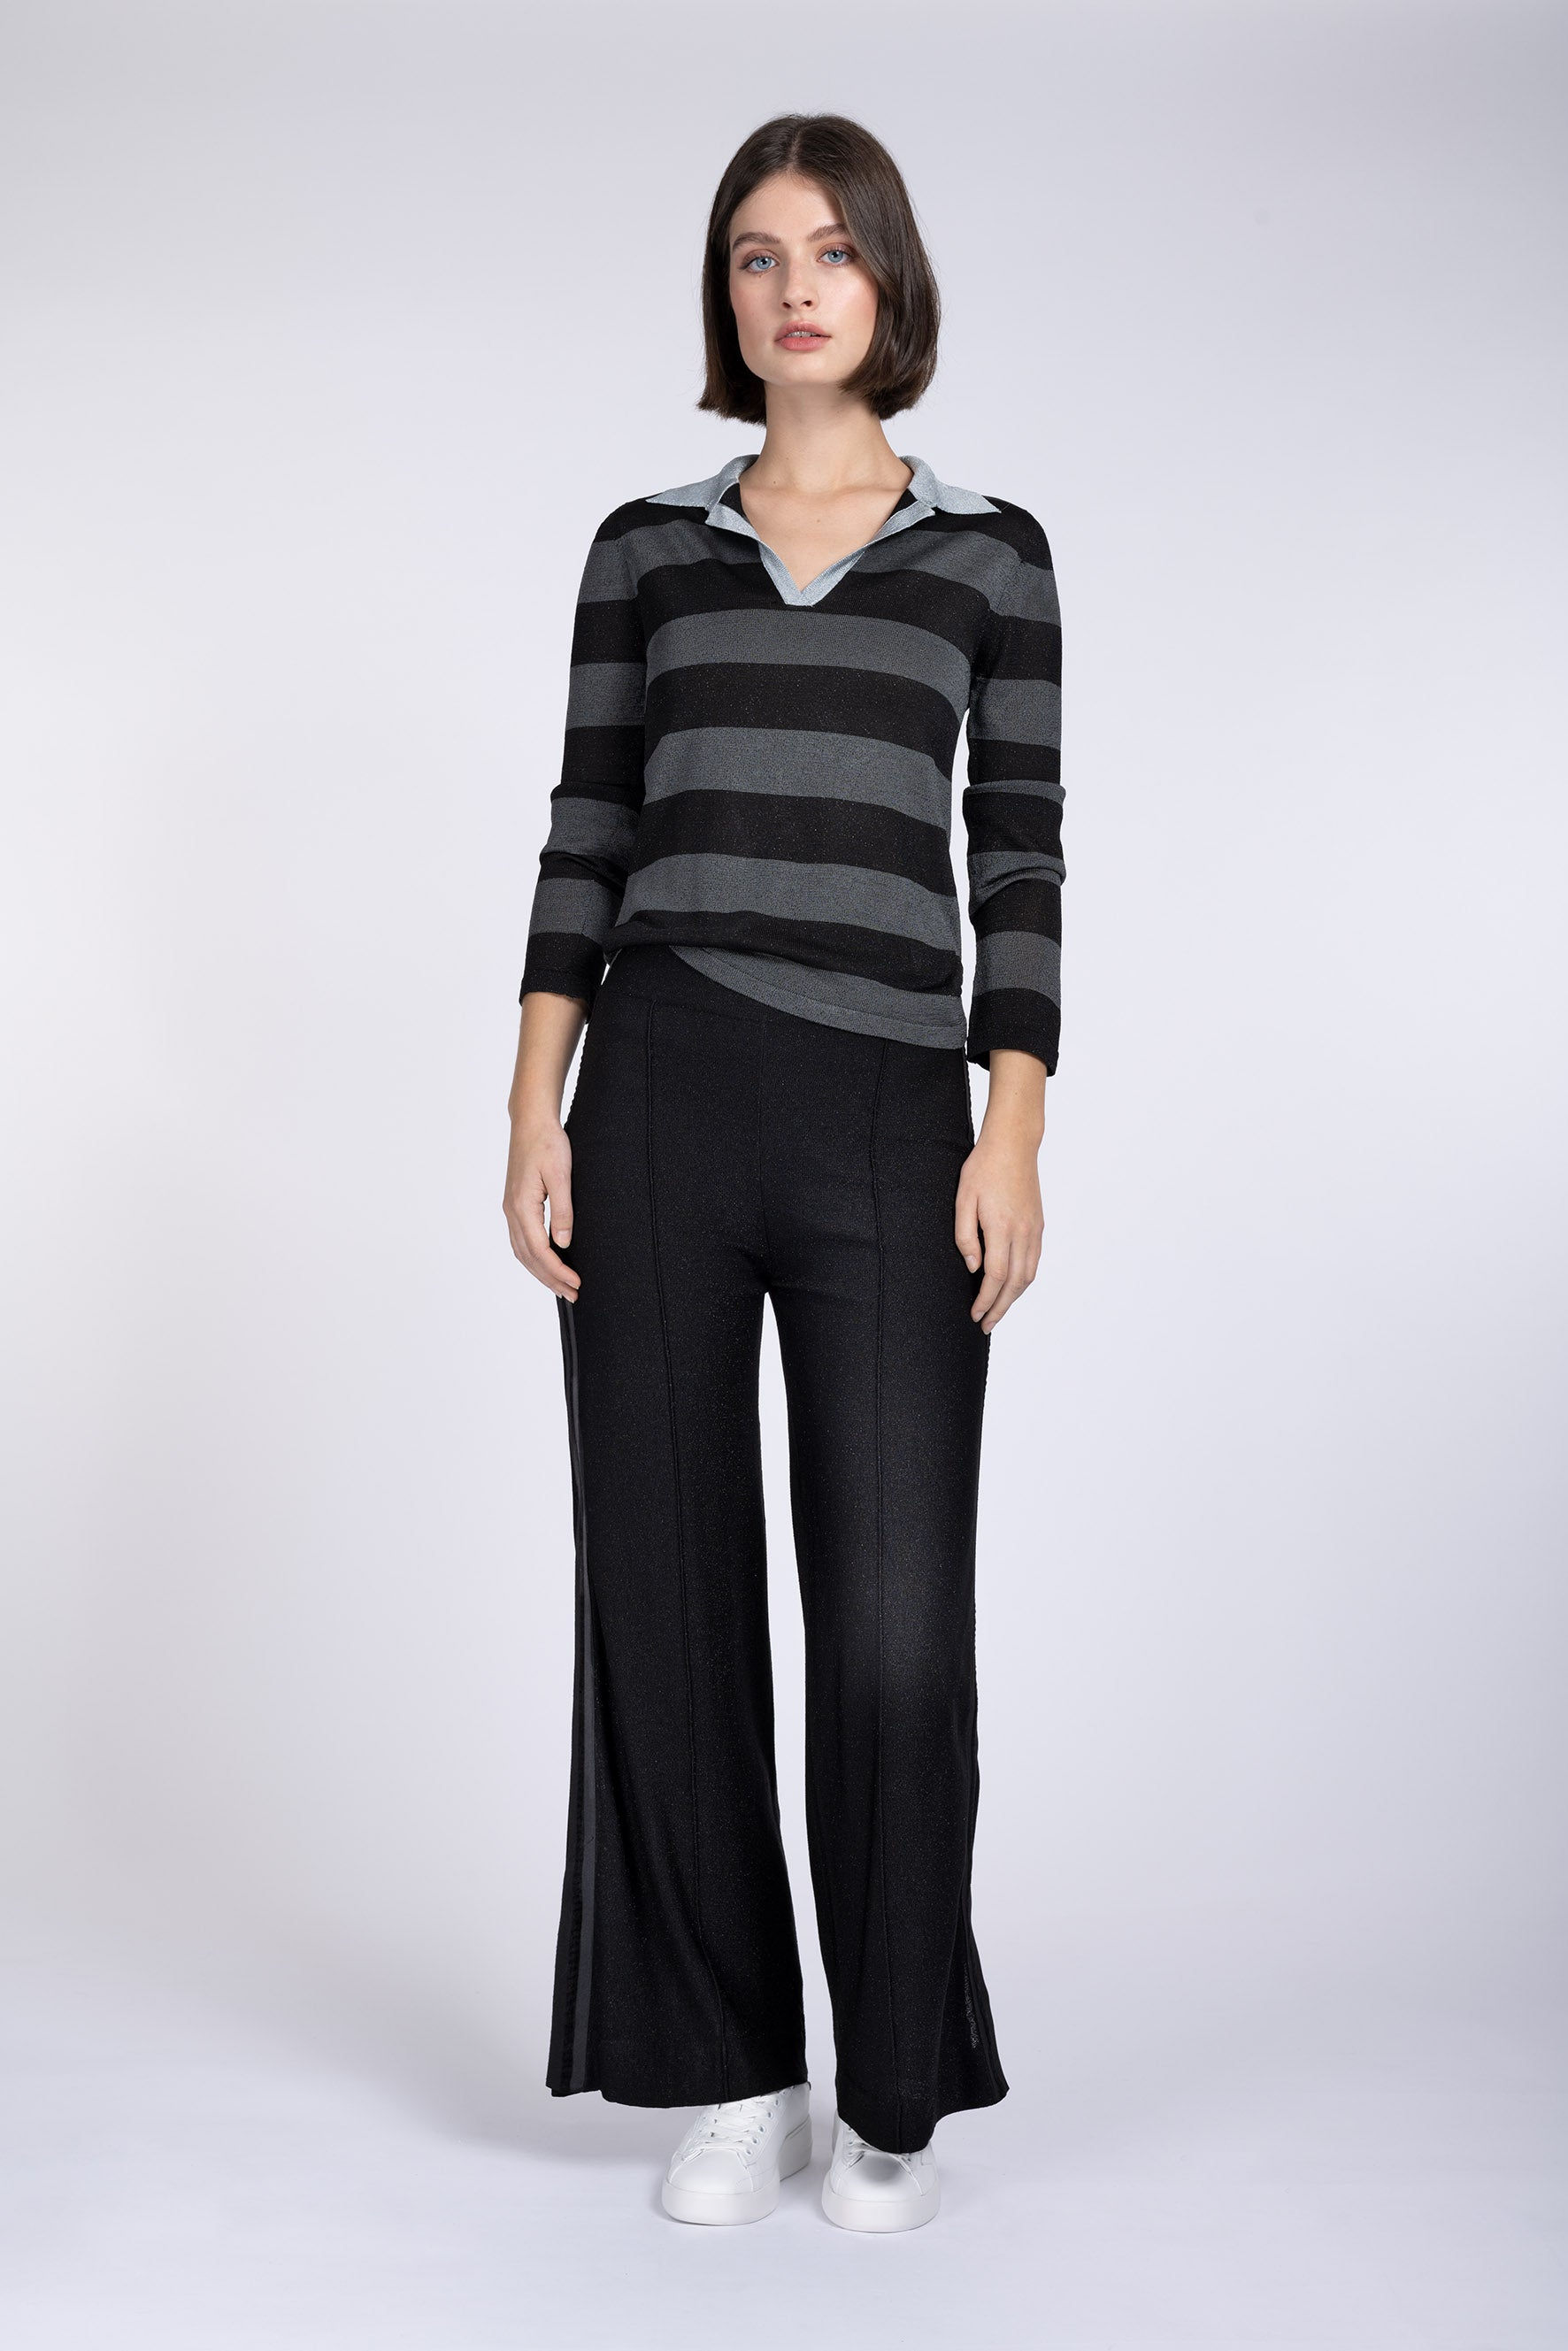 Cressida black lurex trousers - PRESS Primrose Hill